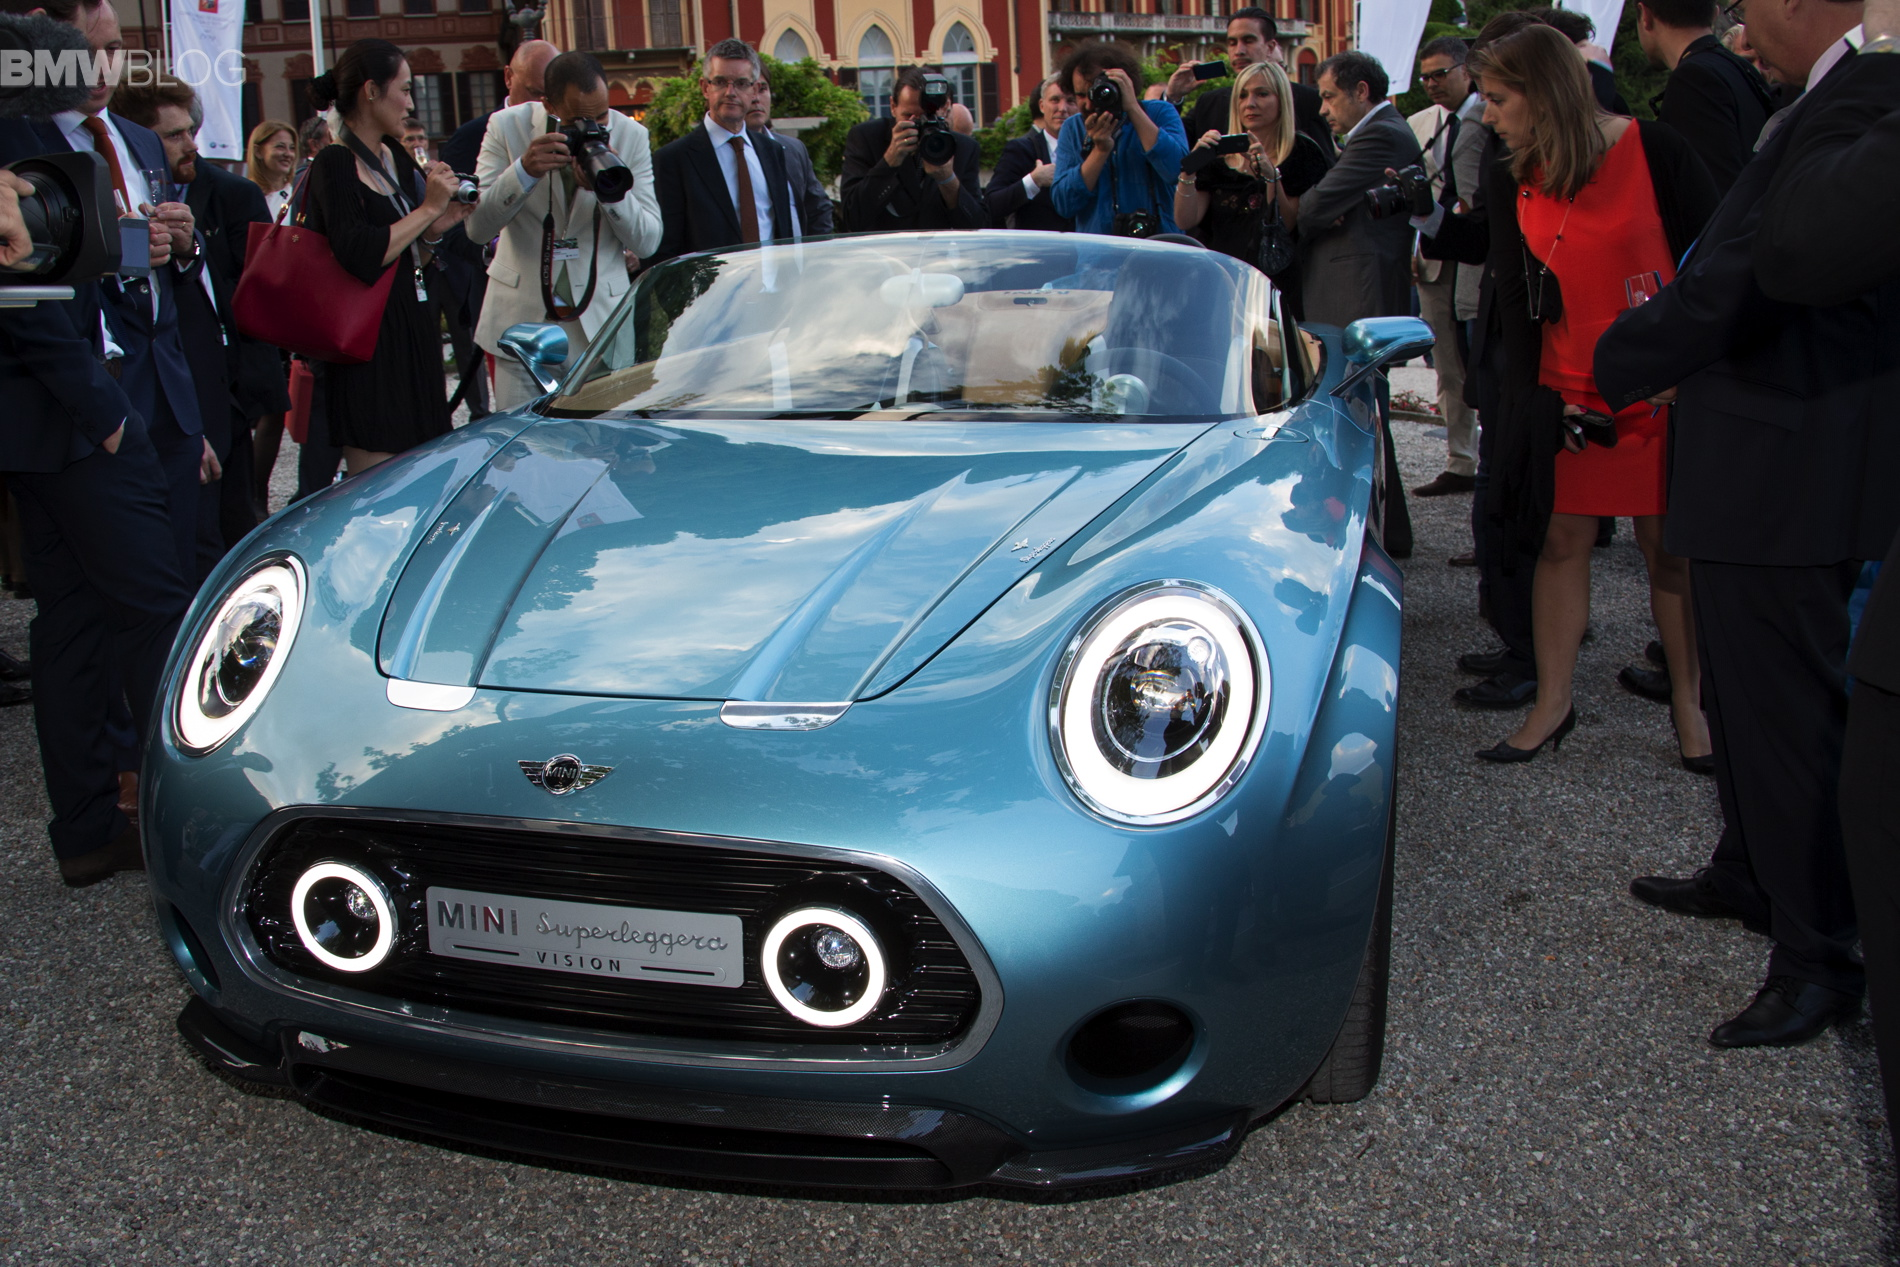 MINI Superleggera Vision villa deste 06